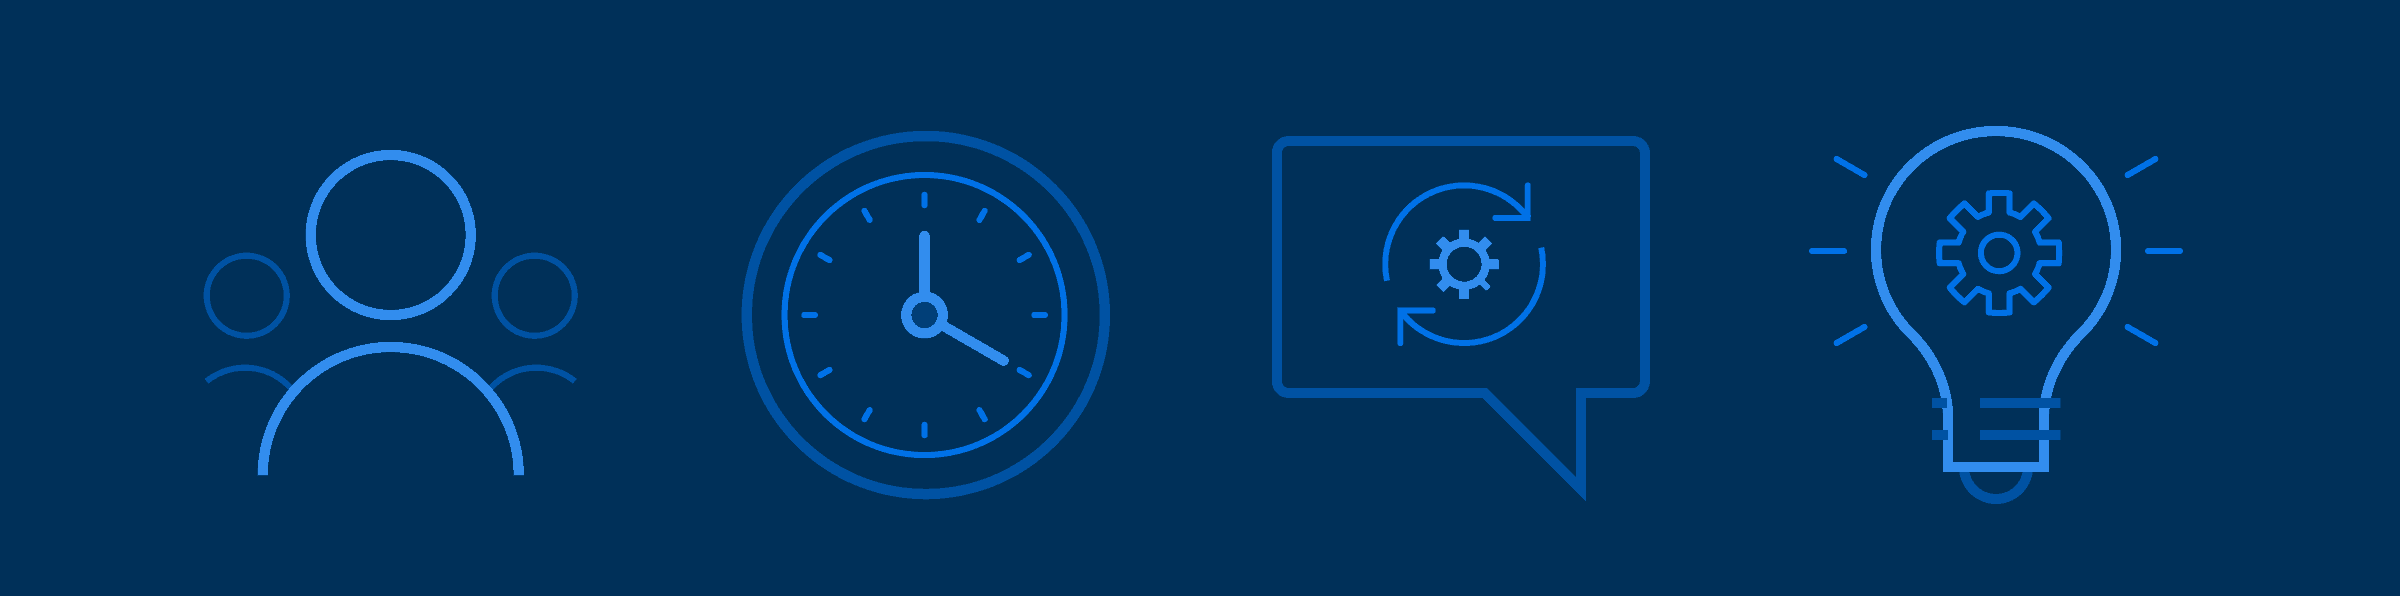 Simple line icons of a group of people, a clock, and automation